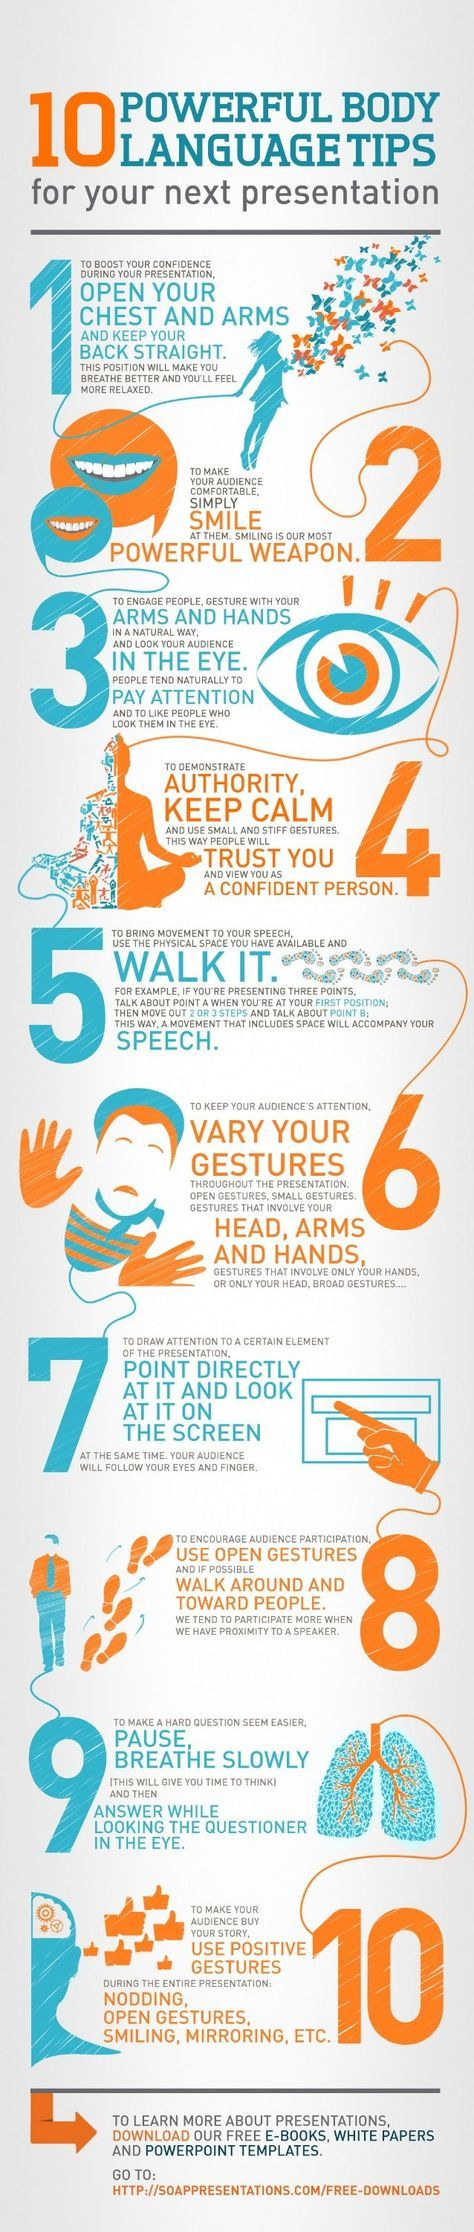 10 Powerful Body Tips For Your Next Presentation